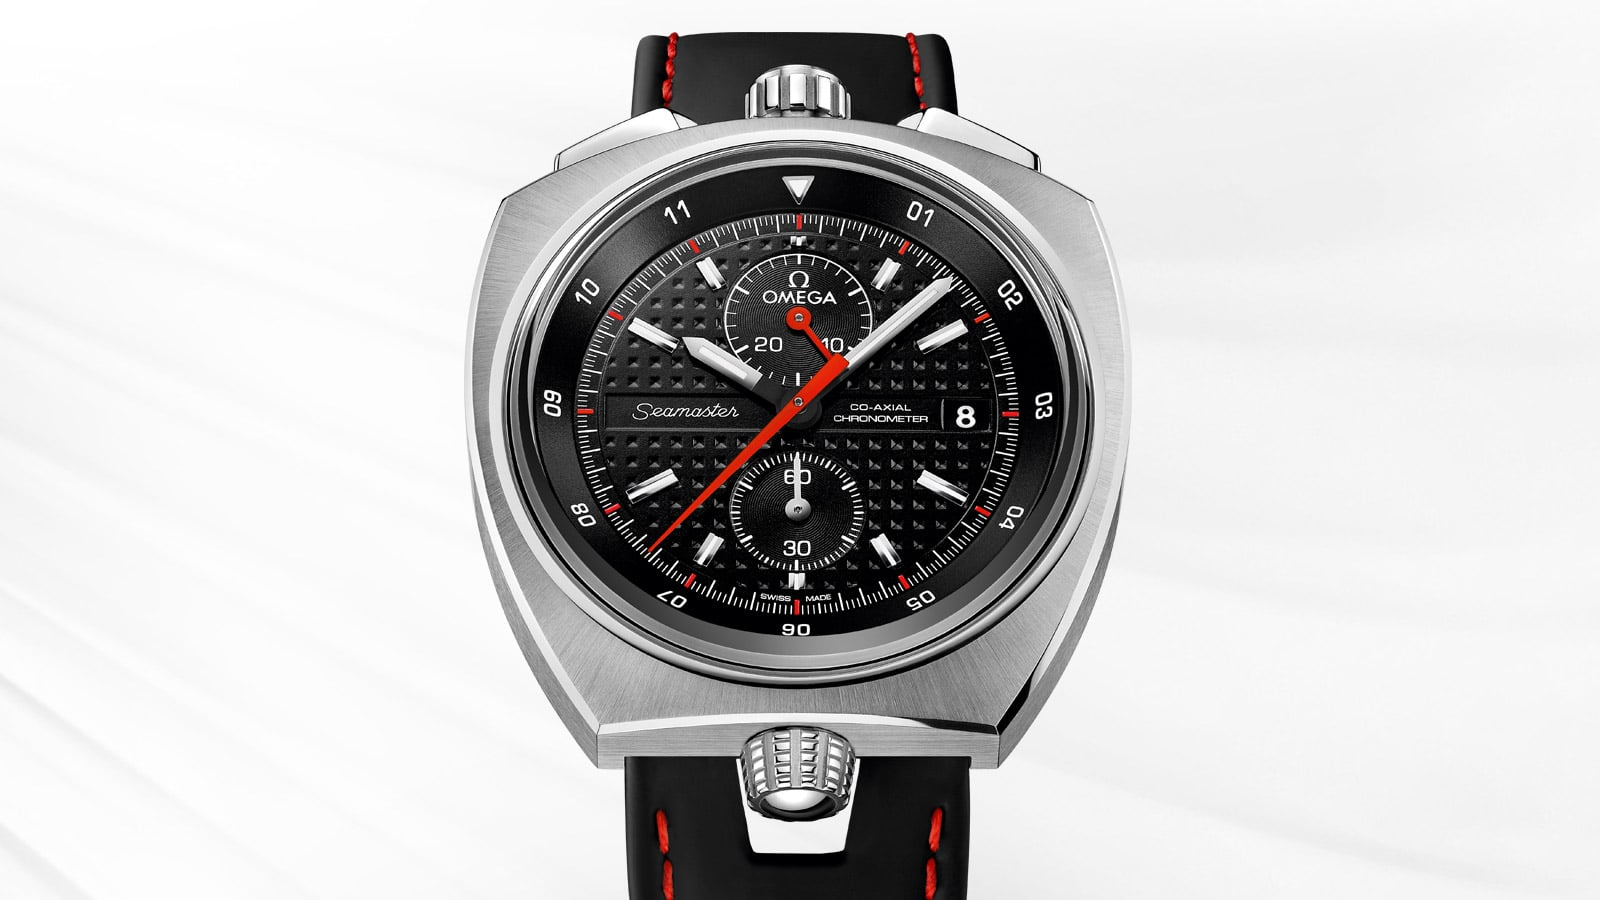 The Seamaster Bullhead is unique thanks to its asymmetrical style. Its case is made of stainless steel, the strap is made of black leather with red stitching, the dial is black with a Clous de Paris pattern.